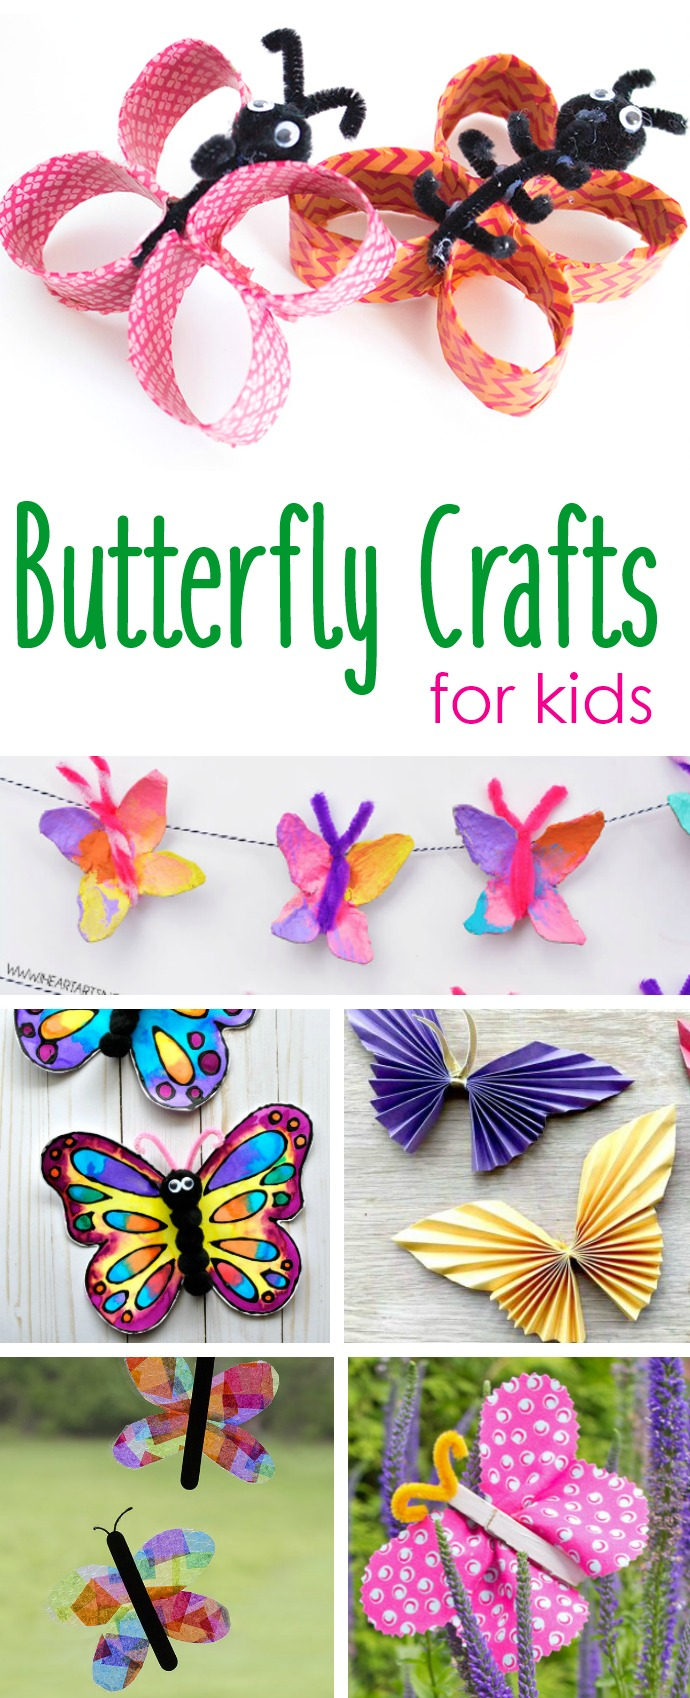 15 FUN  & EASY BUTTERFLY PAPER CRAFTS FOR KIDS + EDUCATIONAL BUTTERFLY VIDEOS